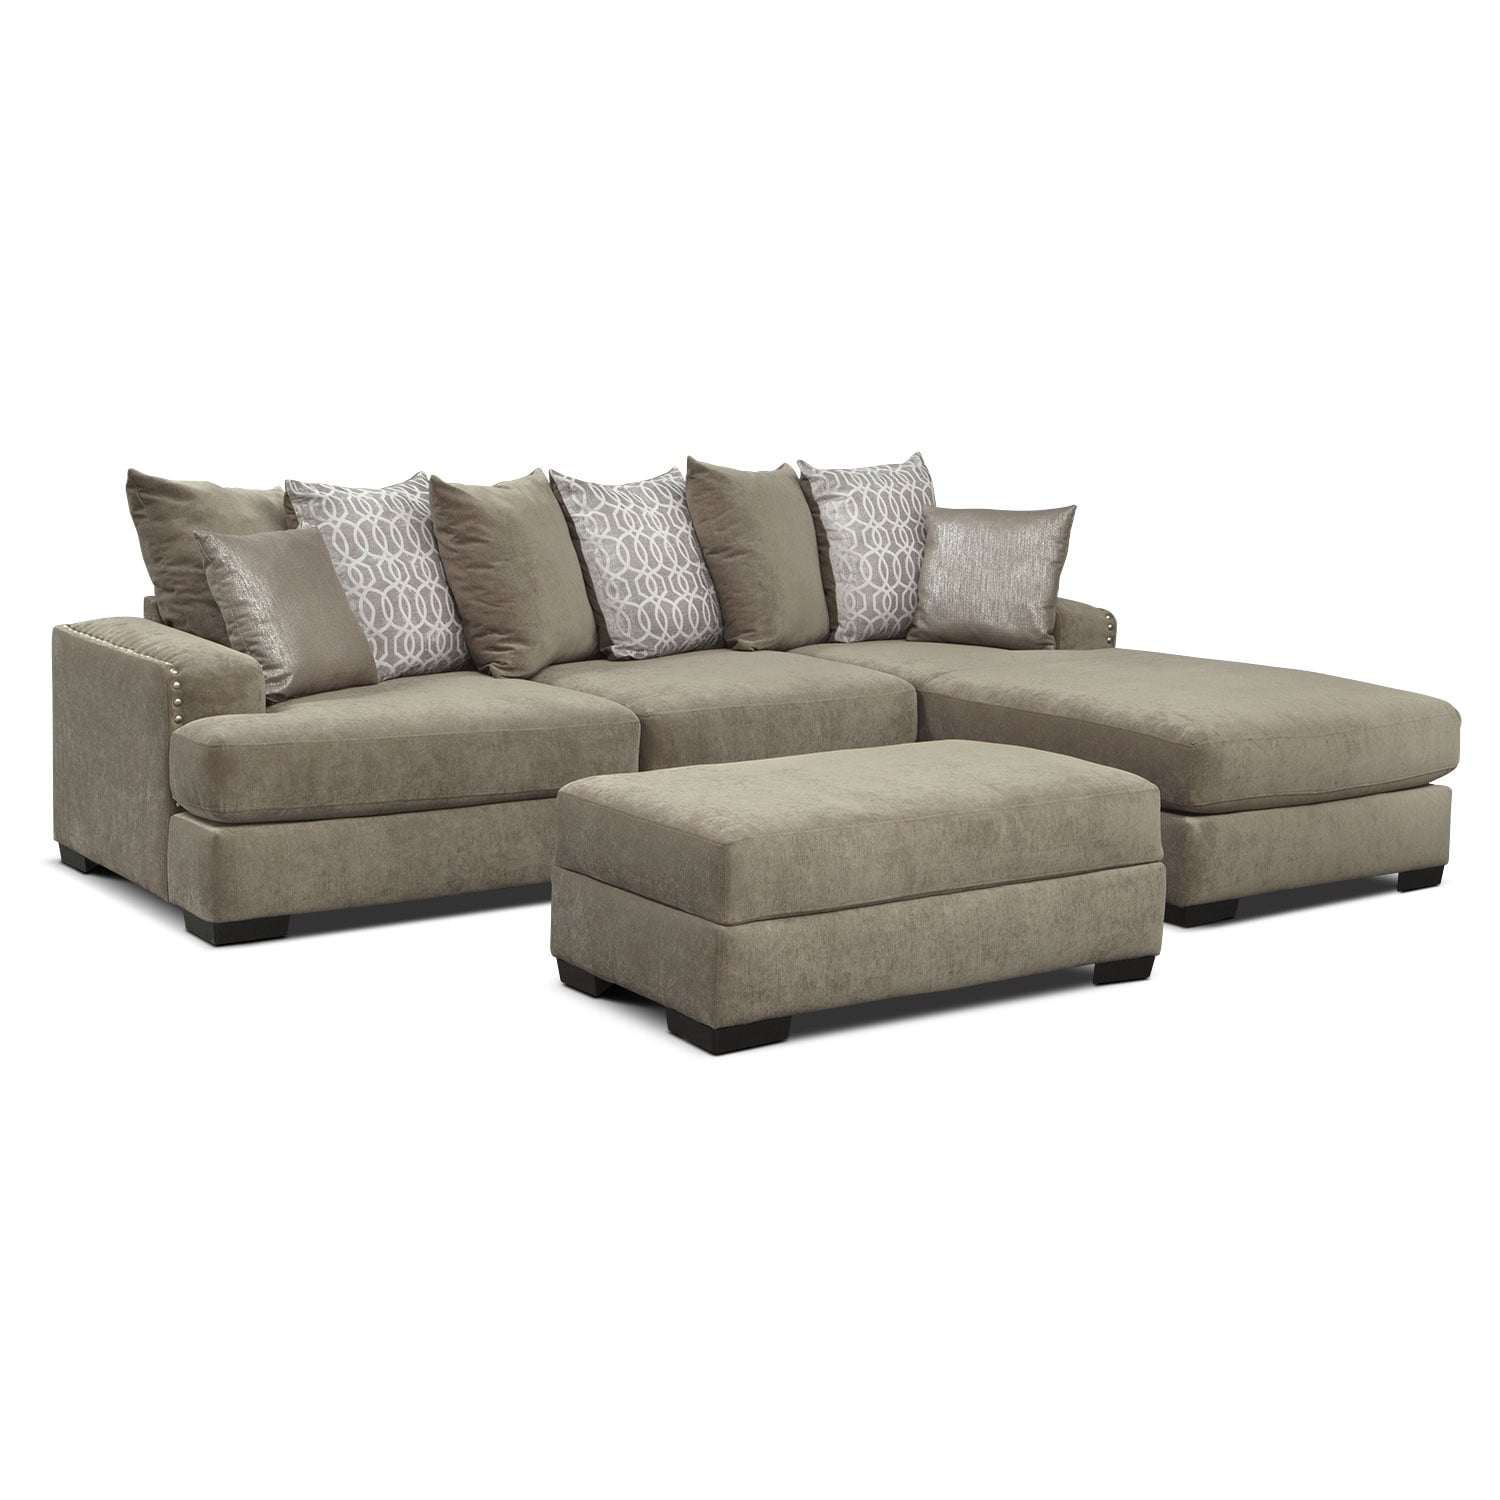 Tempo 2 Pc. Sectional with Right-Facing Chaise w/ Ottoman